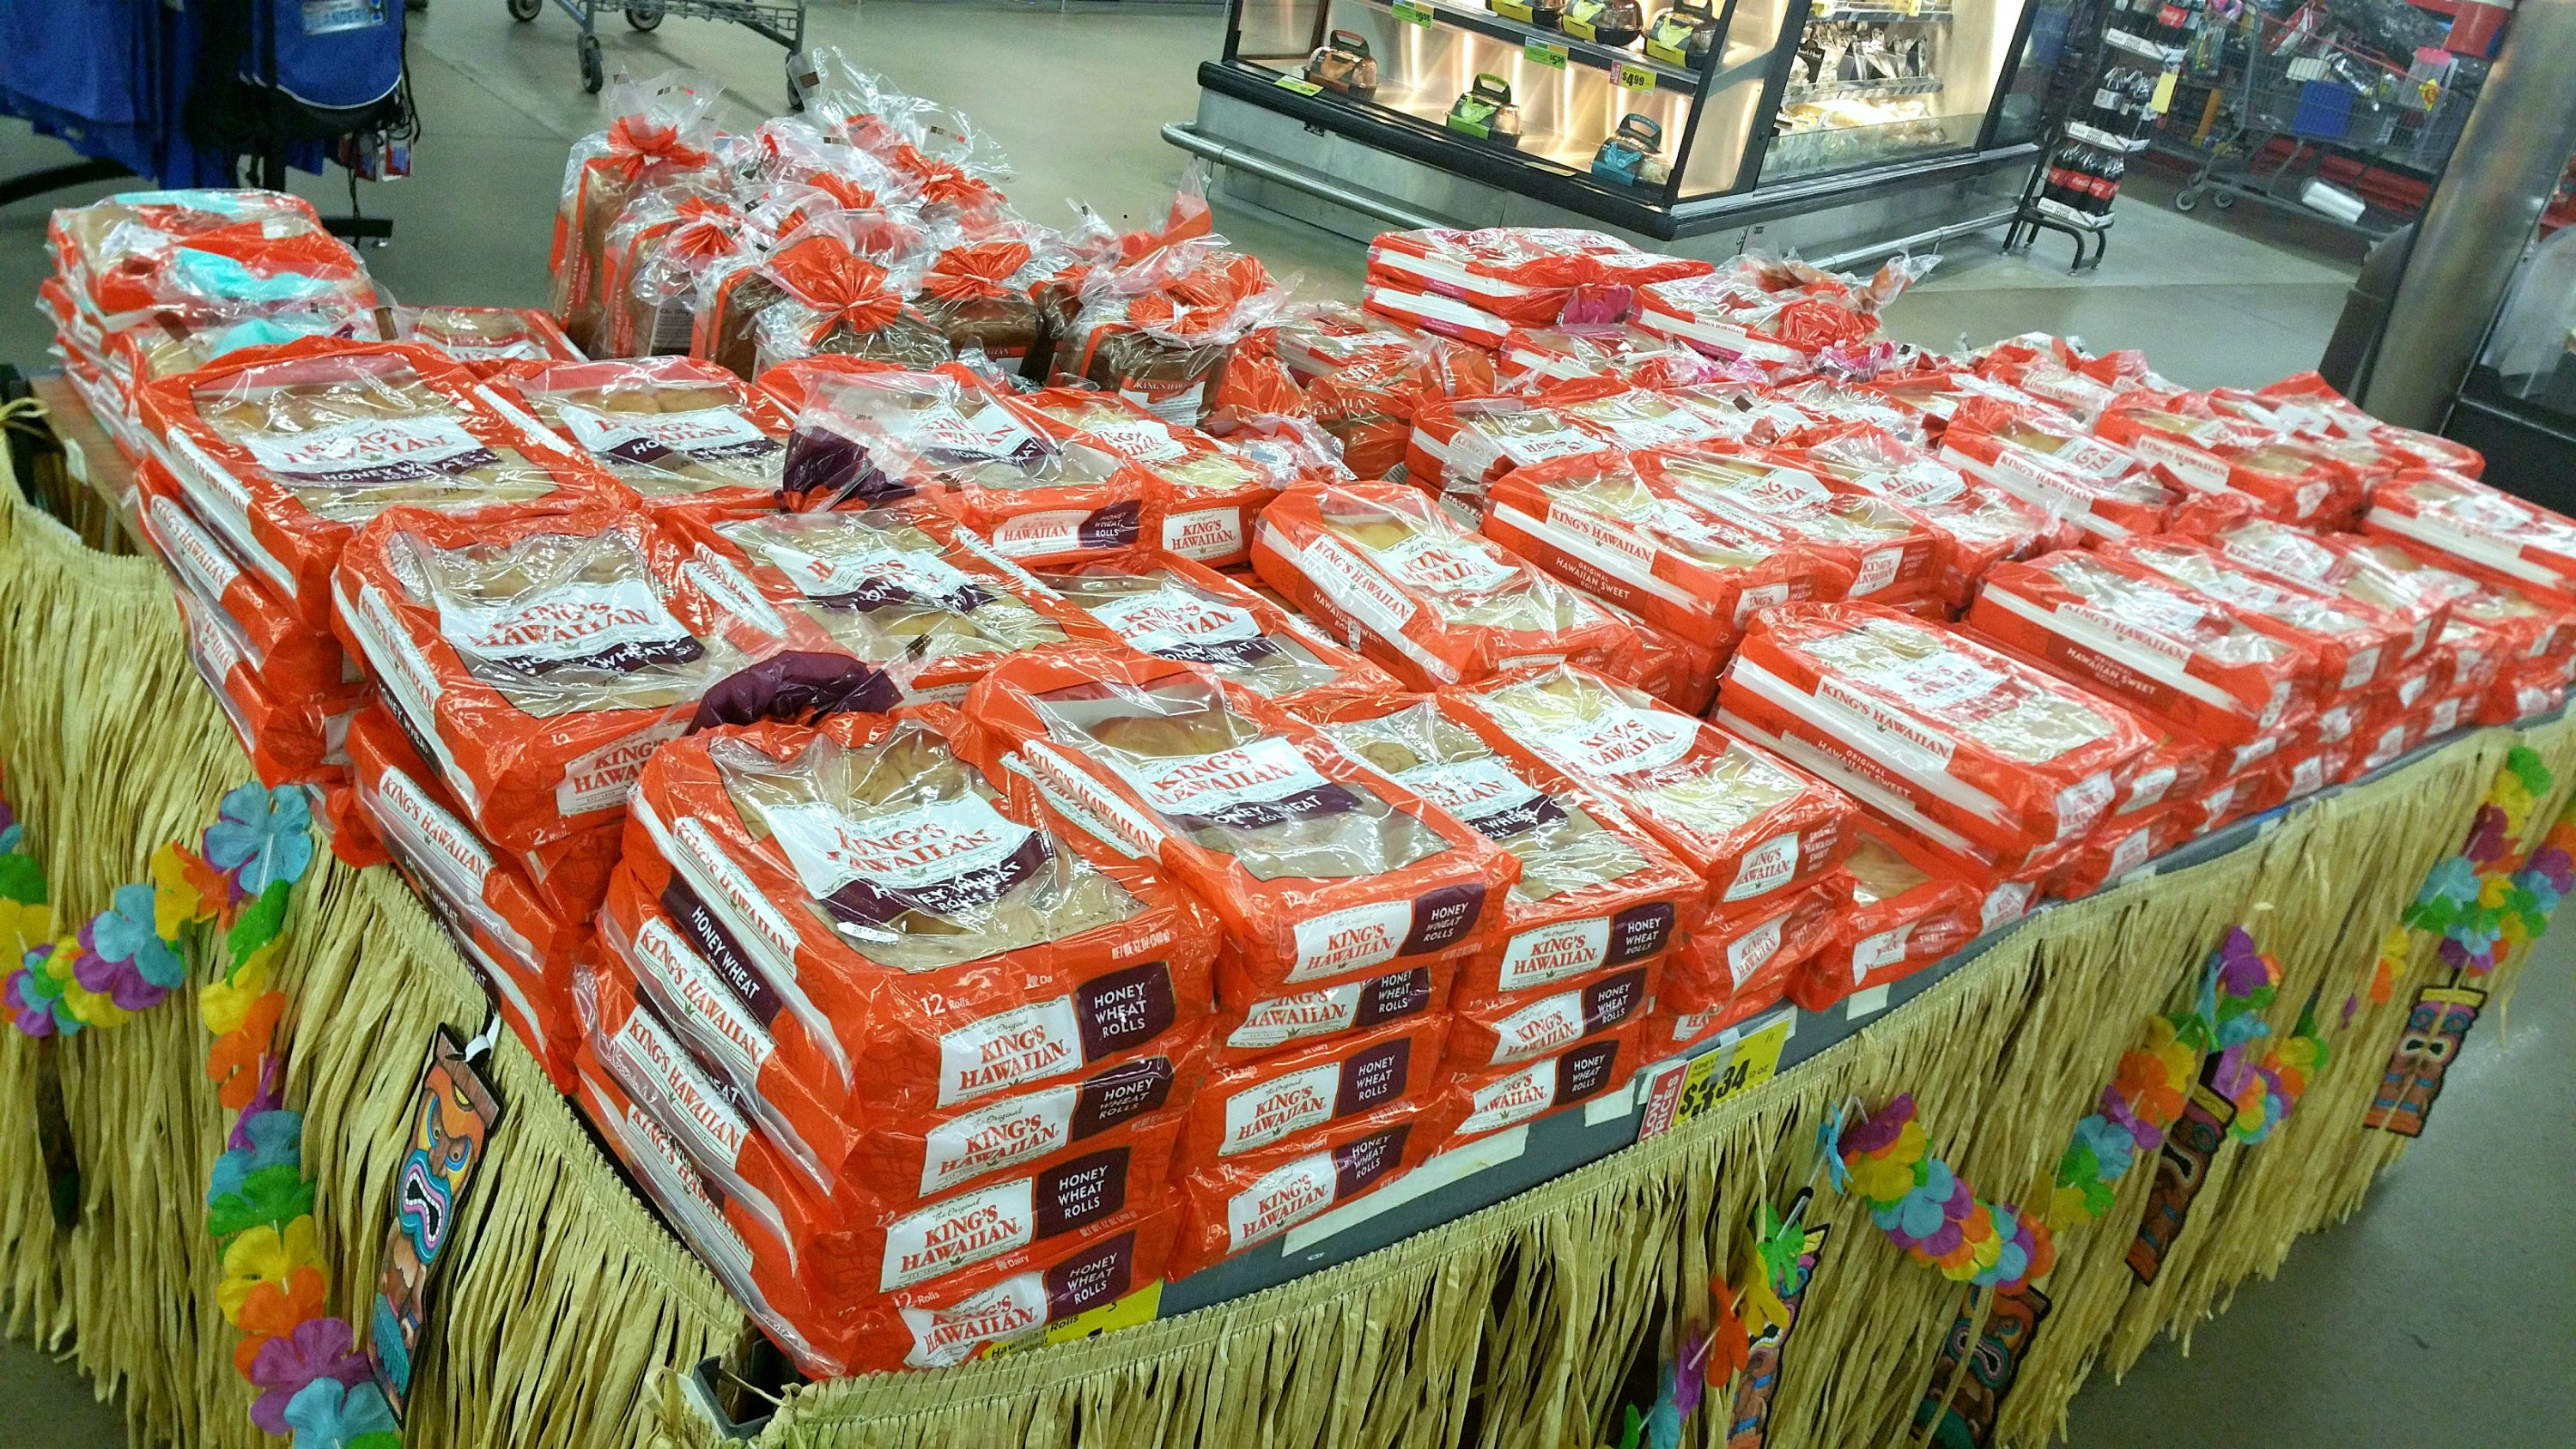 love-the-kings-hawaiian-product-selection-at-heb-gametimegrilling-ad